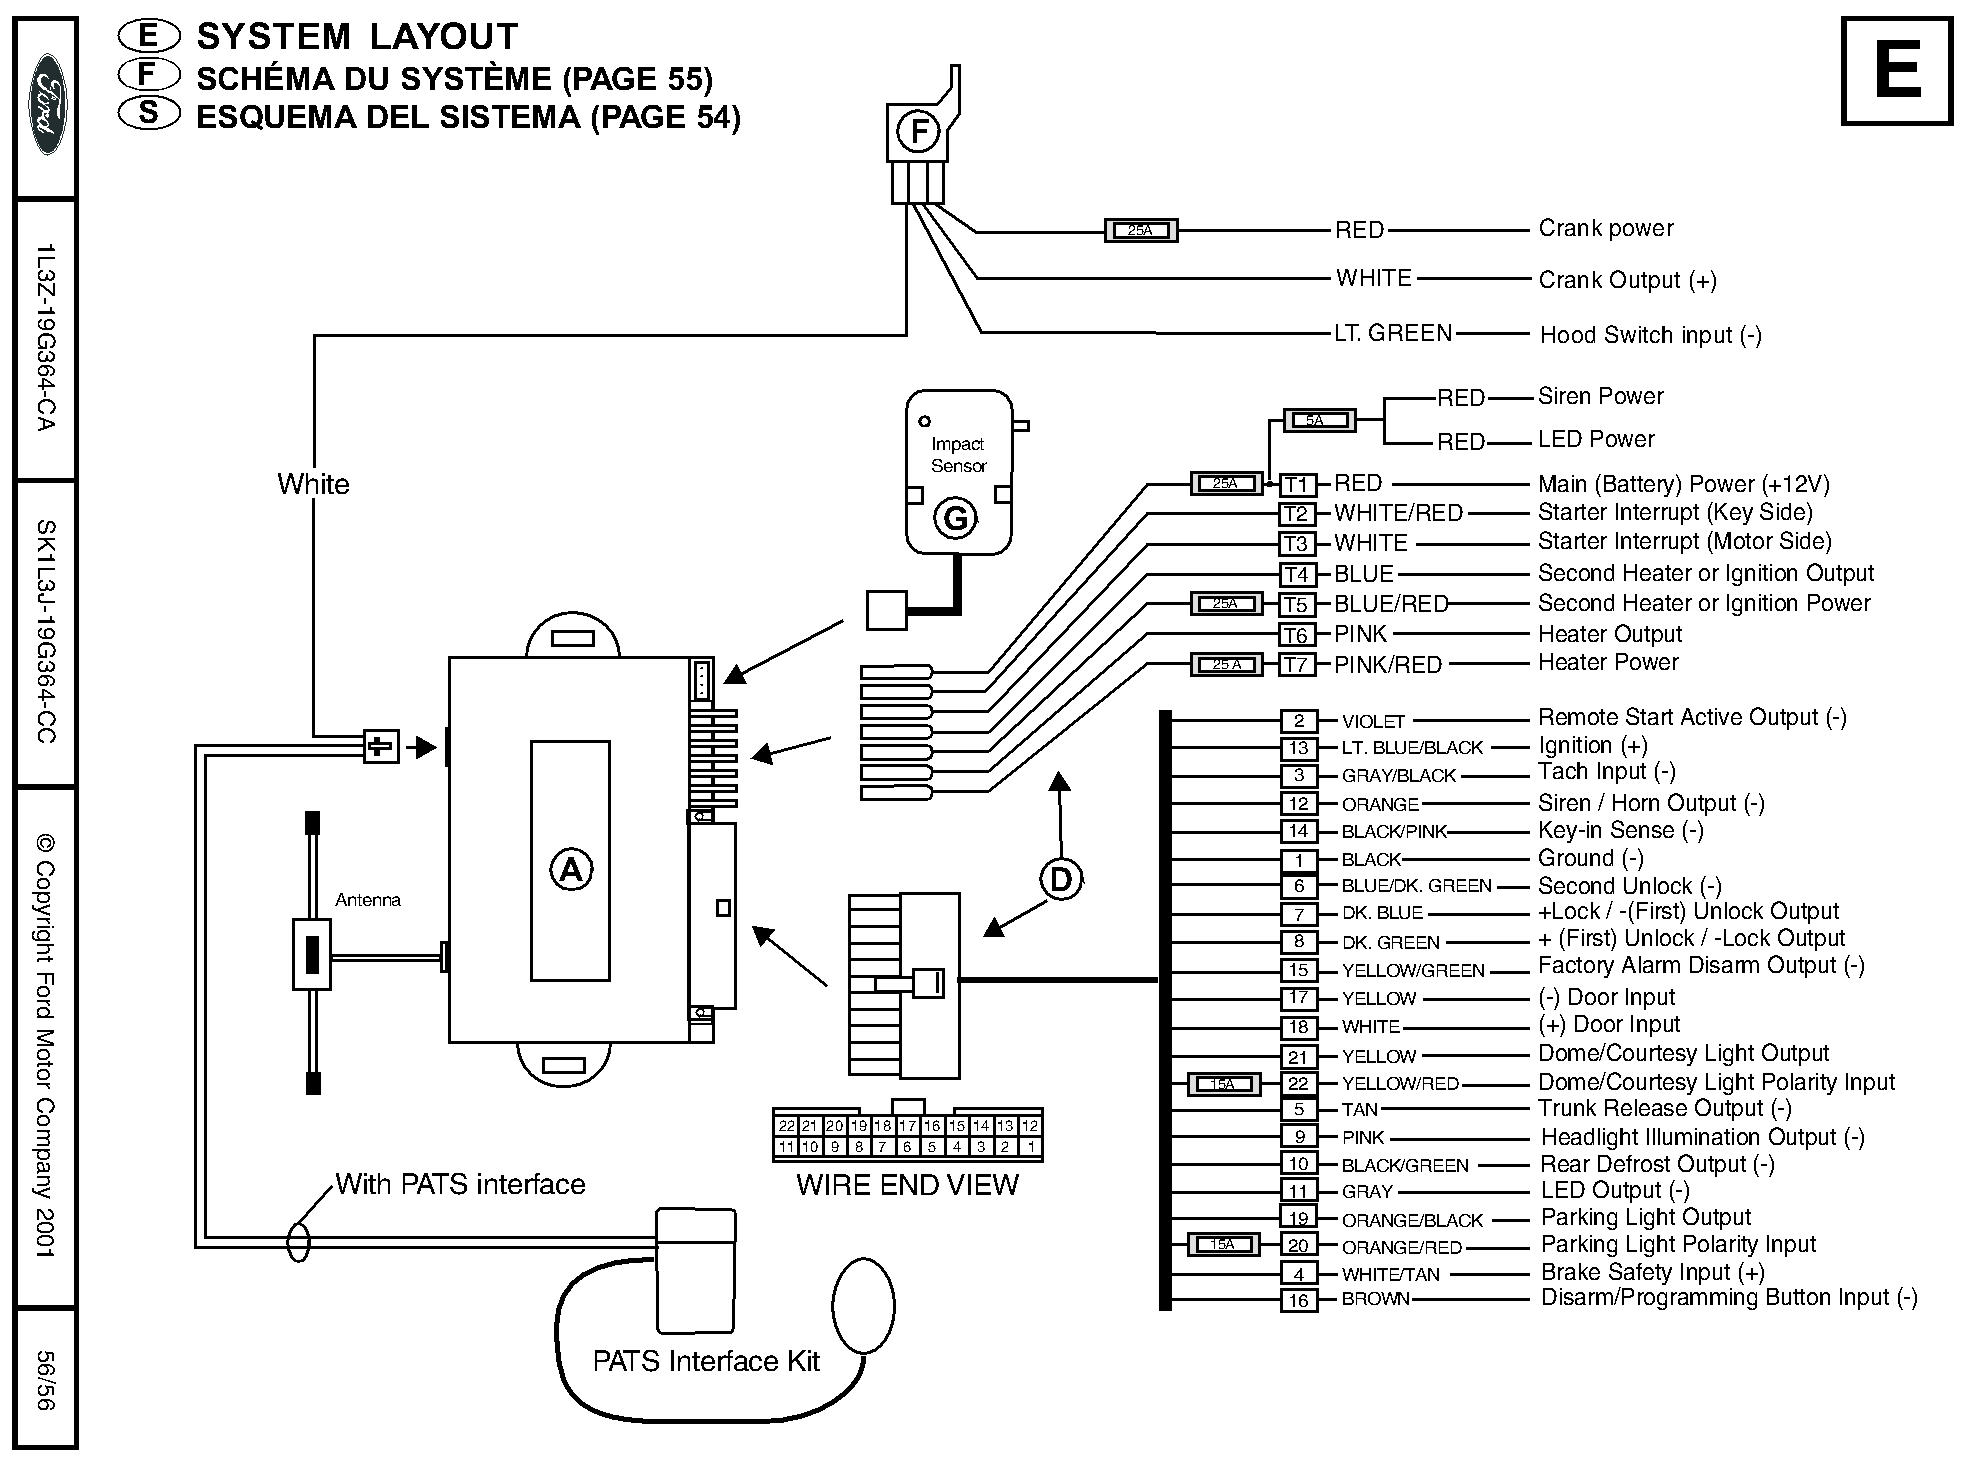 fordgoldstarter python alarm wiring diagram avital remote starter wiring diagram audiovox vehicle wiring diagrams at n-0.co